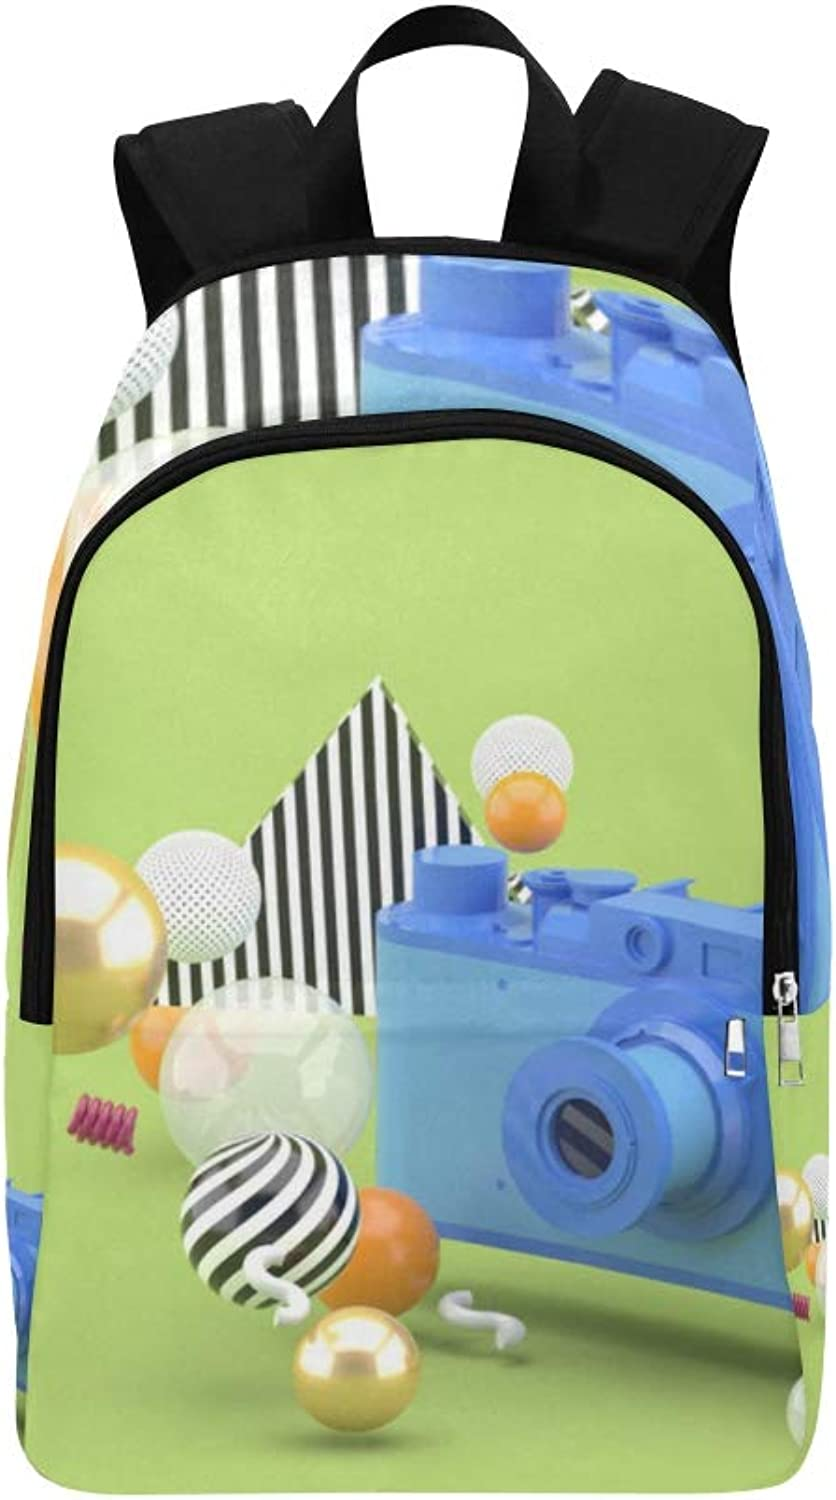 Comfortable and colorful Green Ball Casual Daypack Travel Bag College School Backpack for Mens and Women